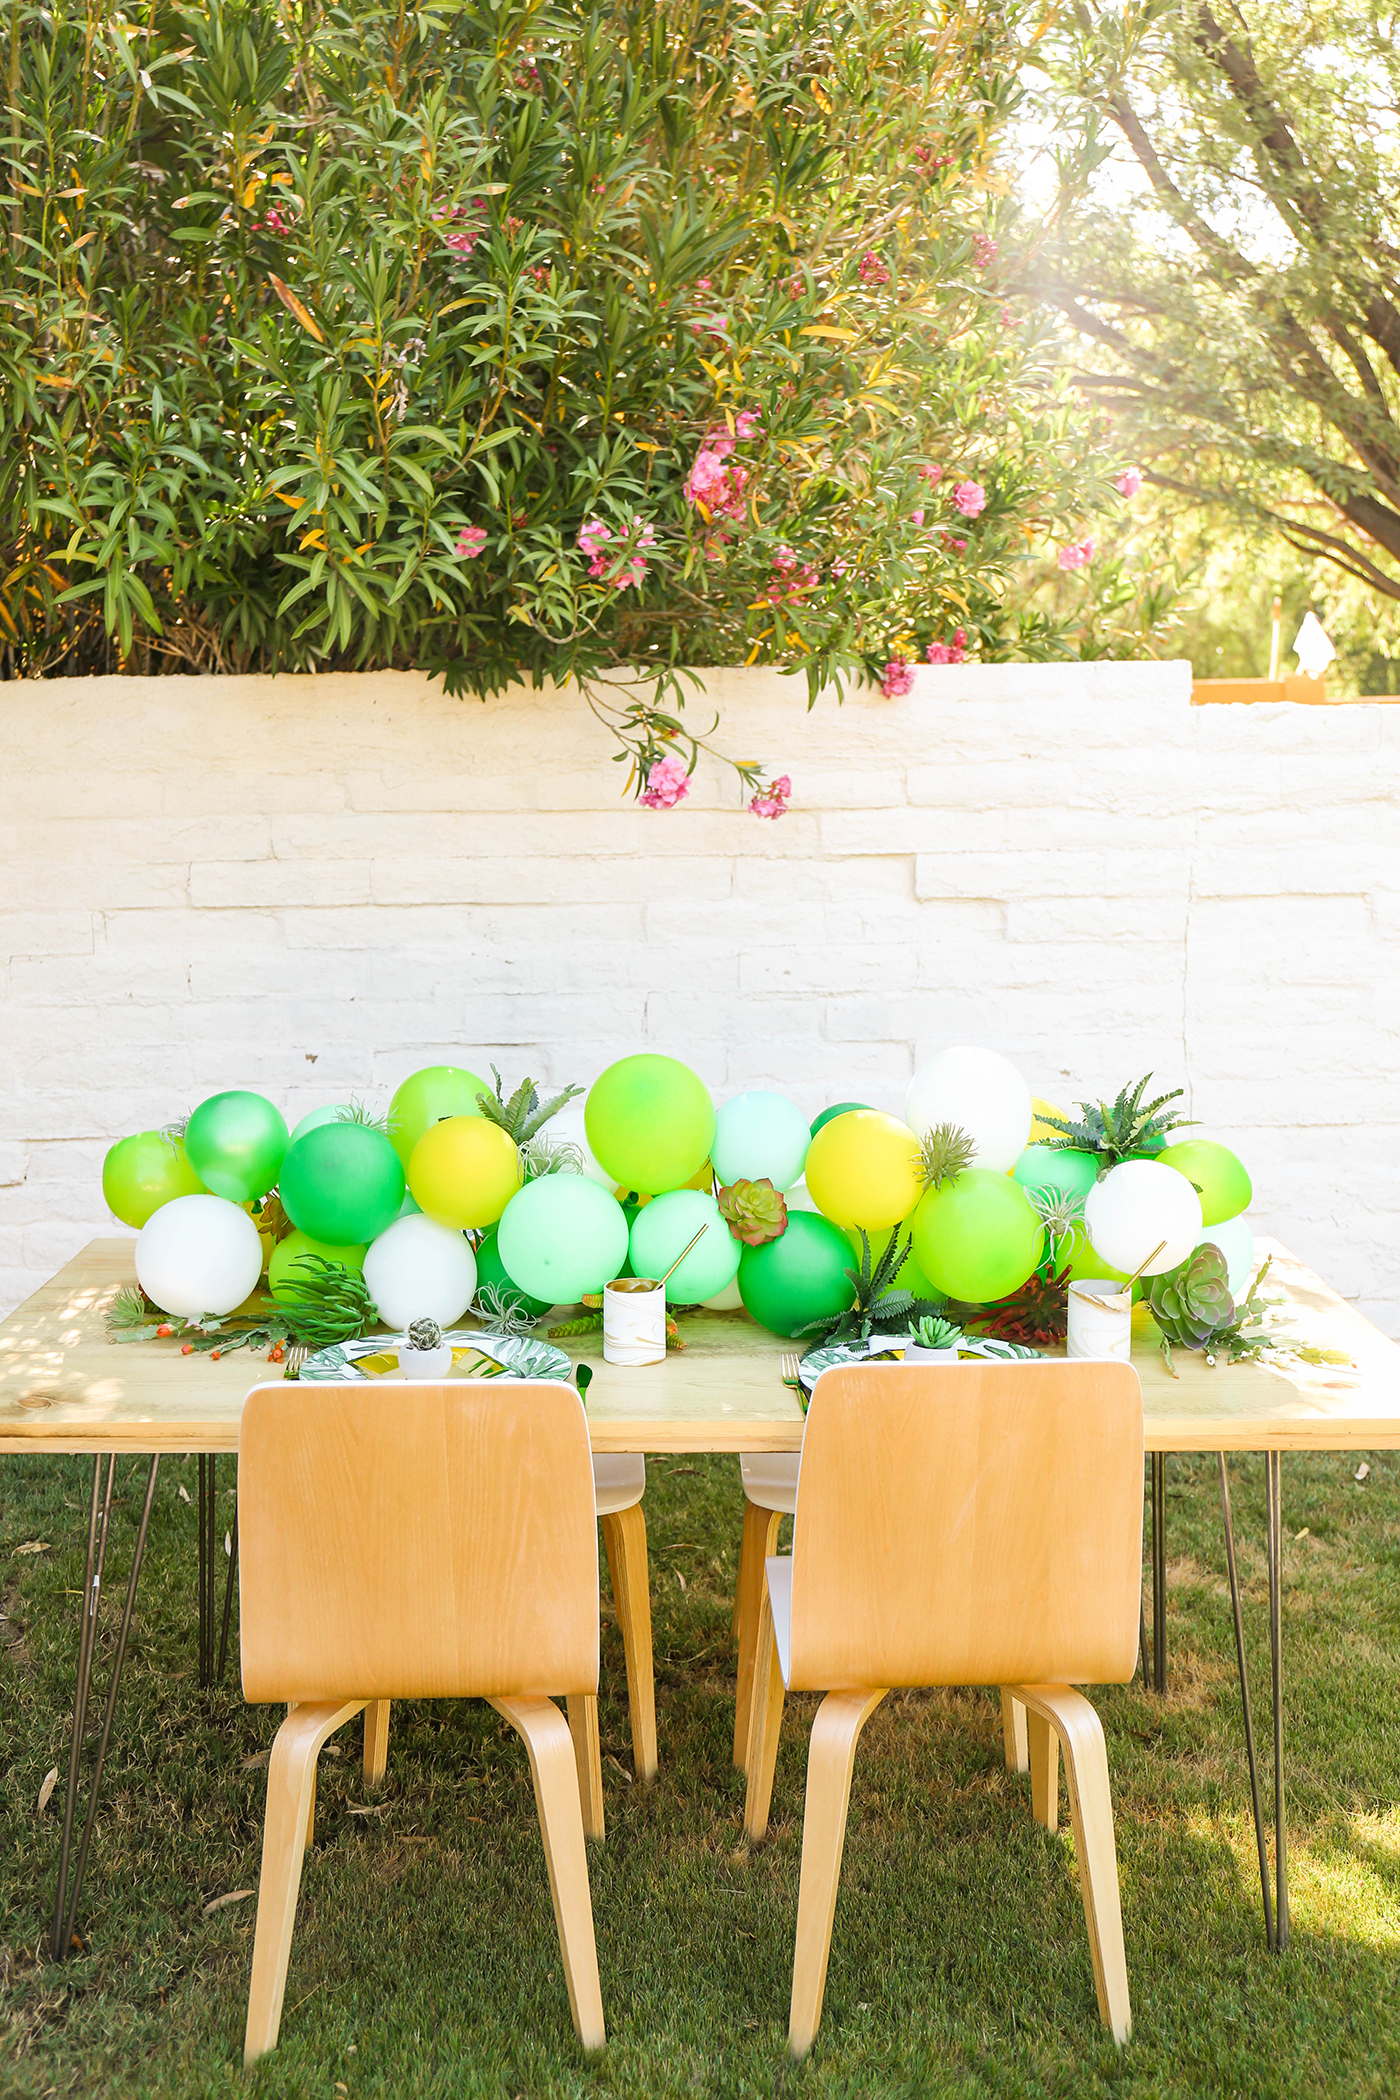 Makeit Diy Desert Themed Balloon Table Runner With Faux Greenery